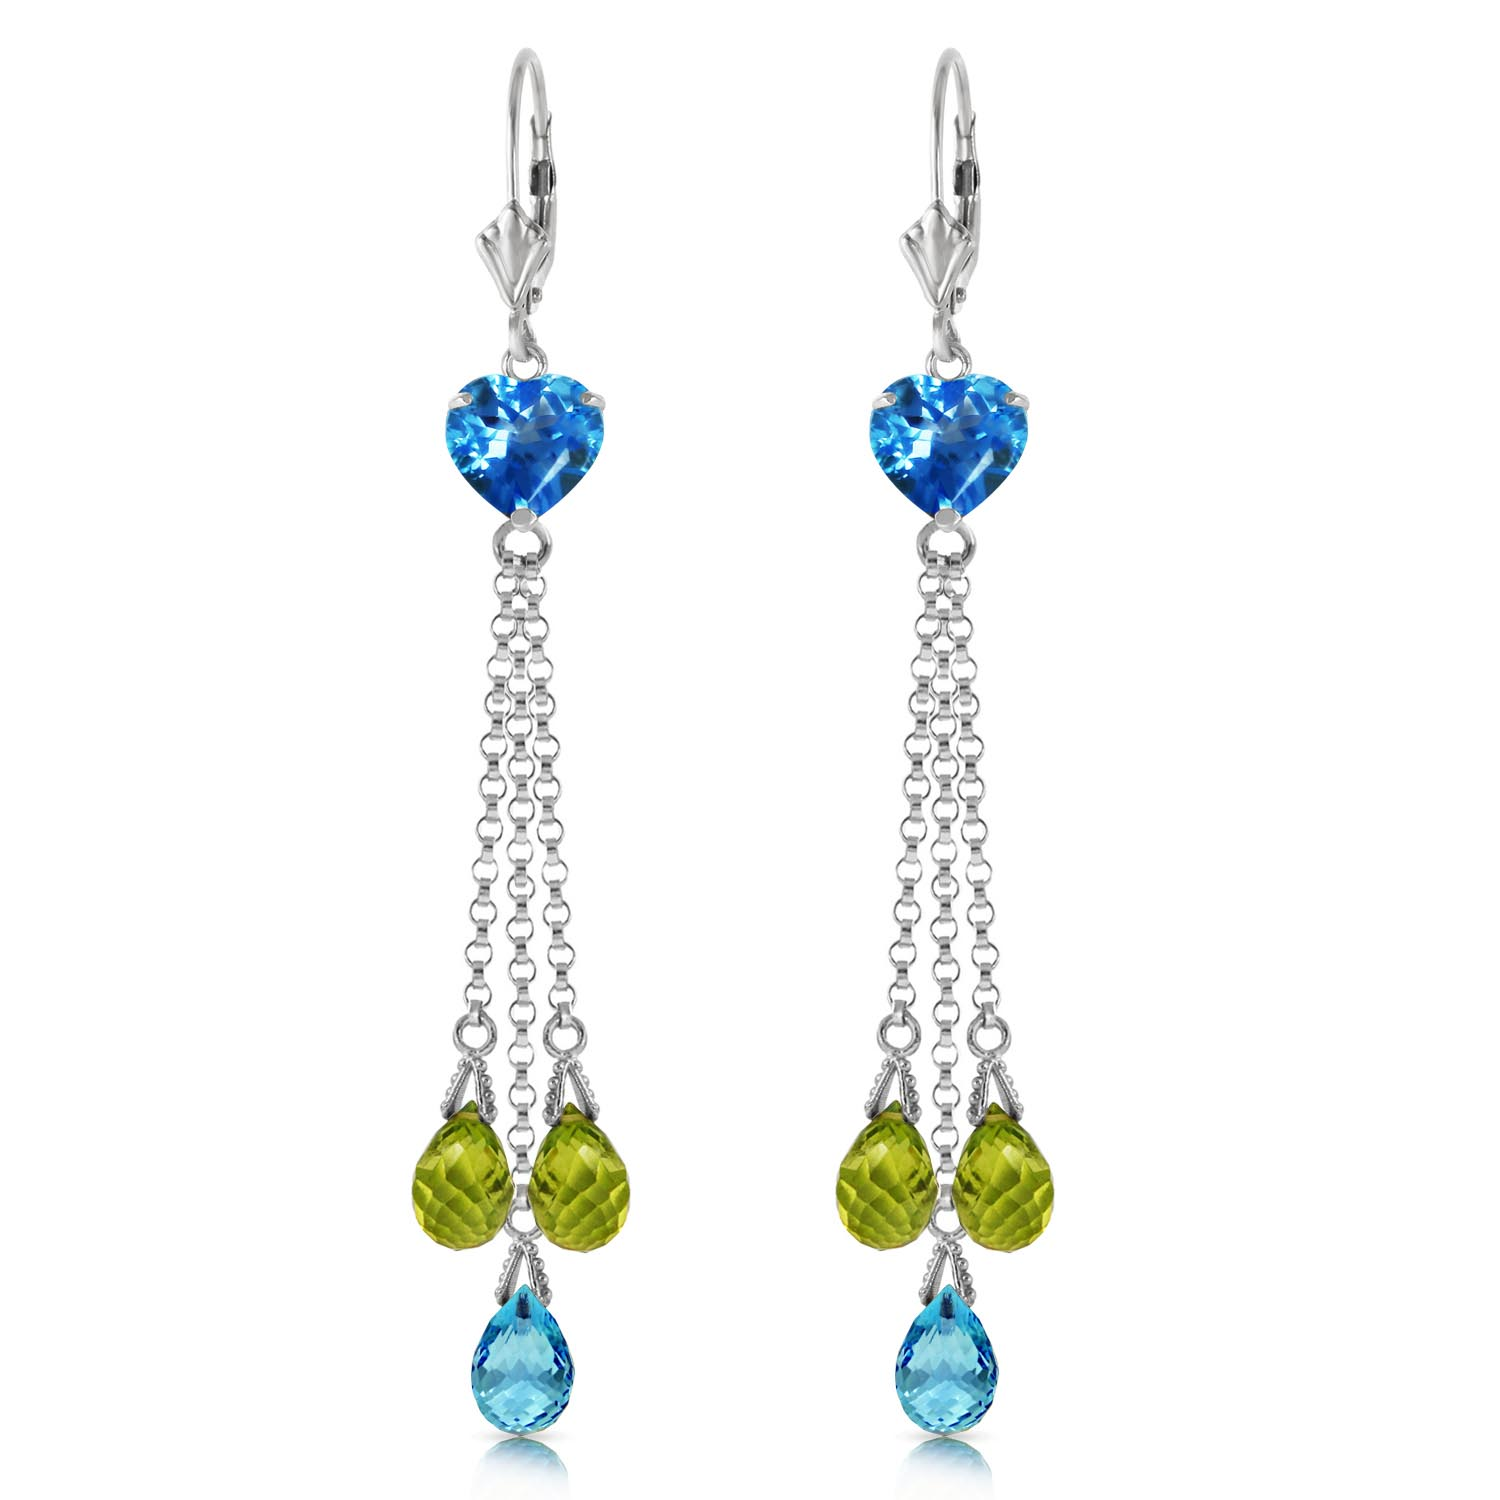 Blue Topaz and Peridot Vestige Drop Earrings 9.5ctw in 9ct White Gold